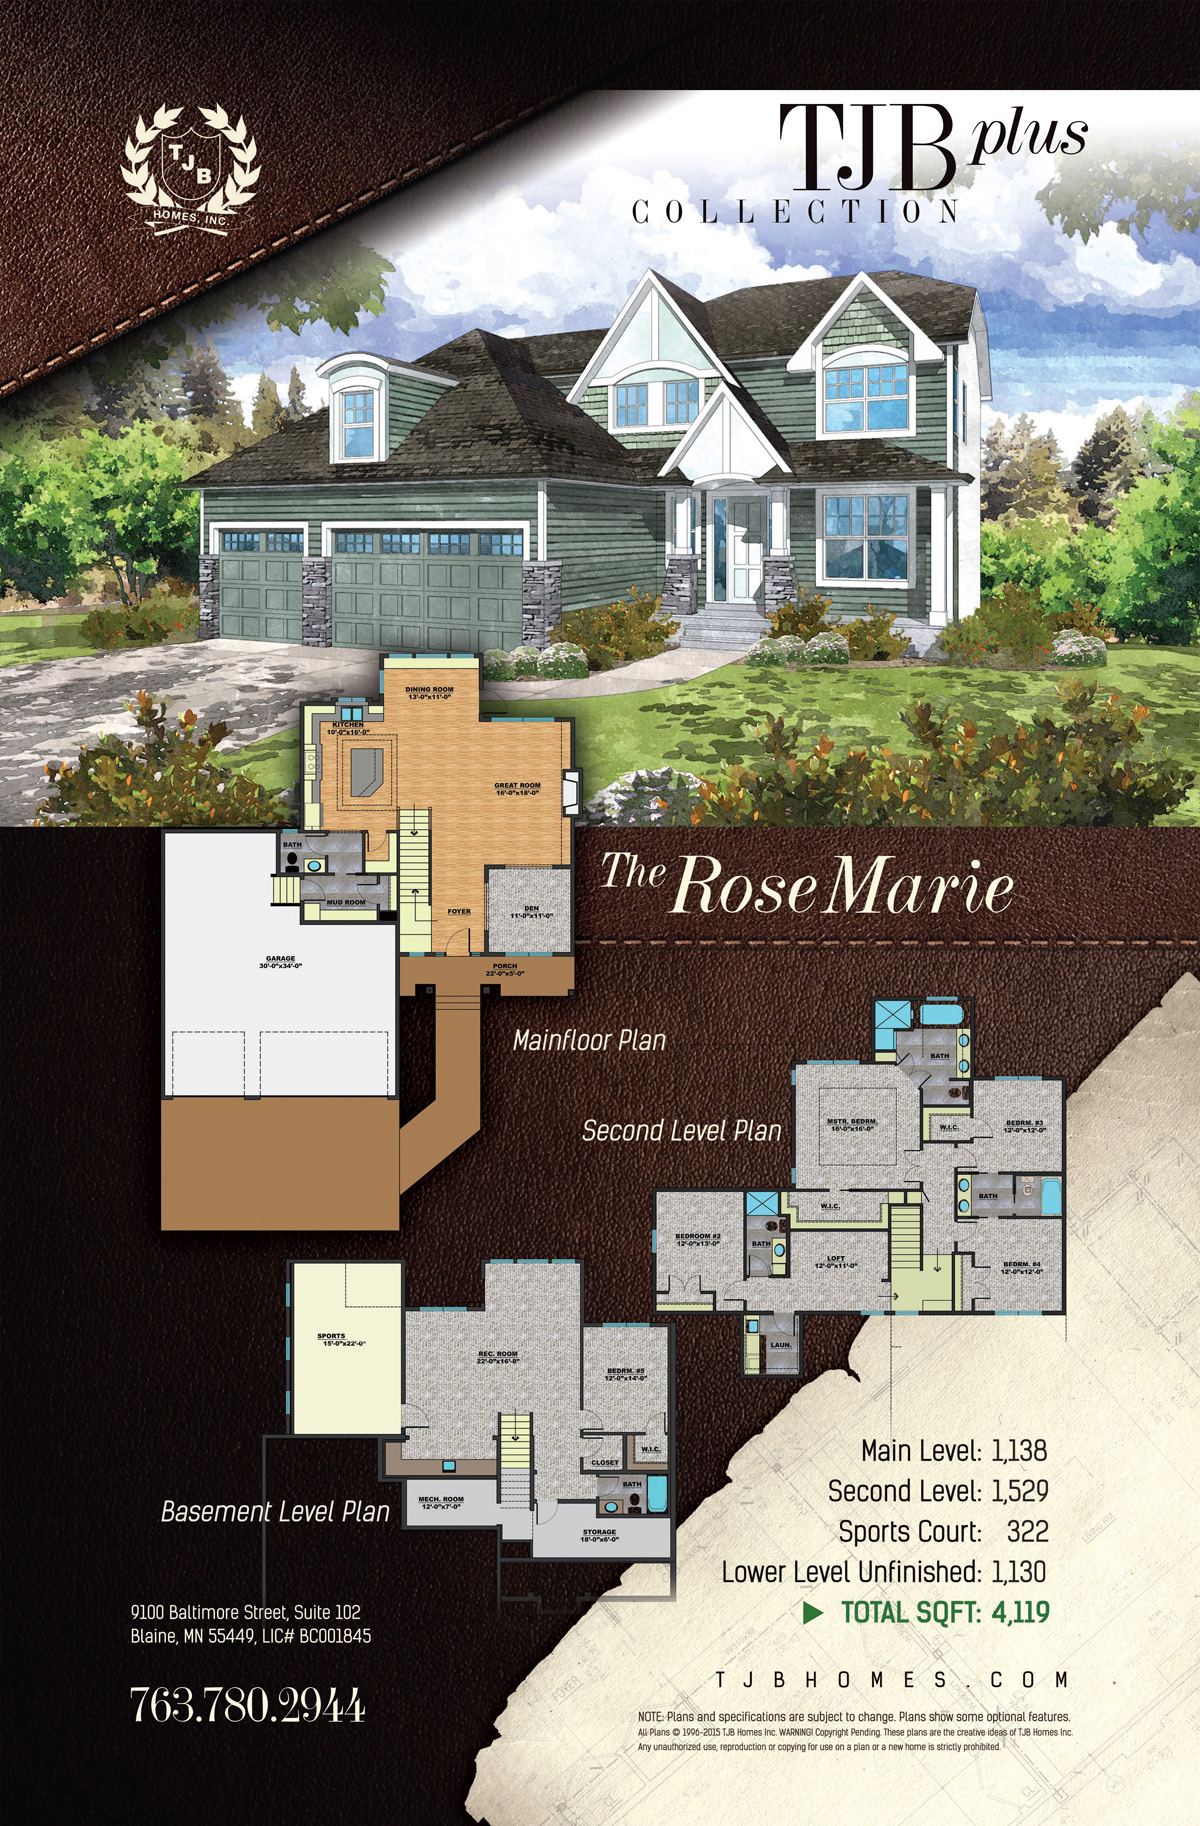 TJB Plus Collection Home Plans - The Rose Marie